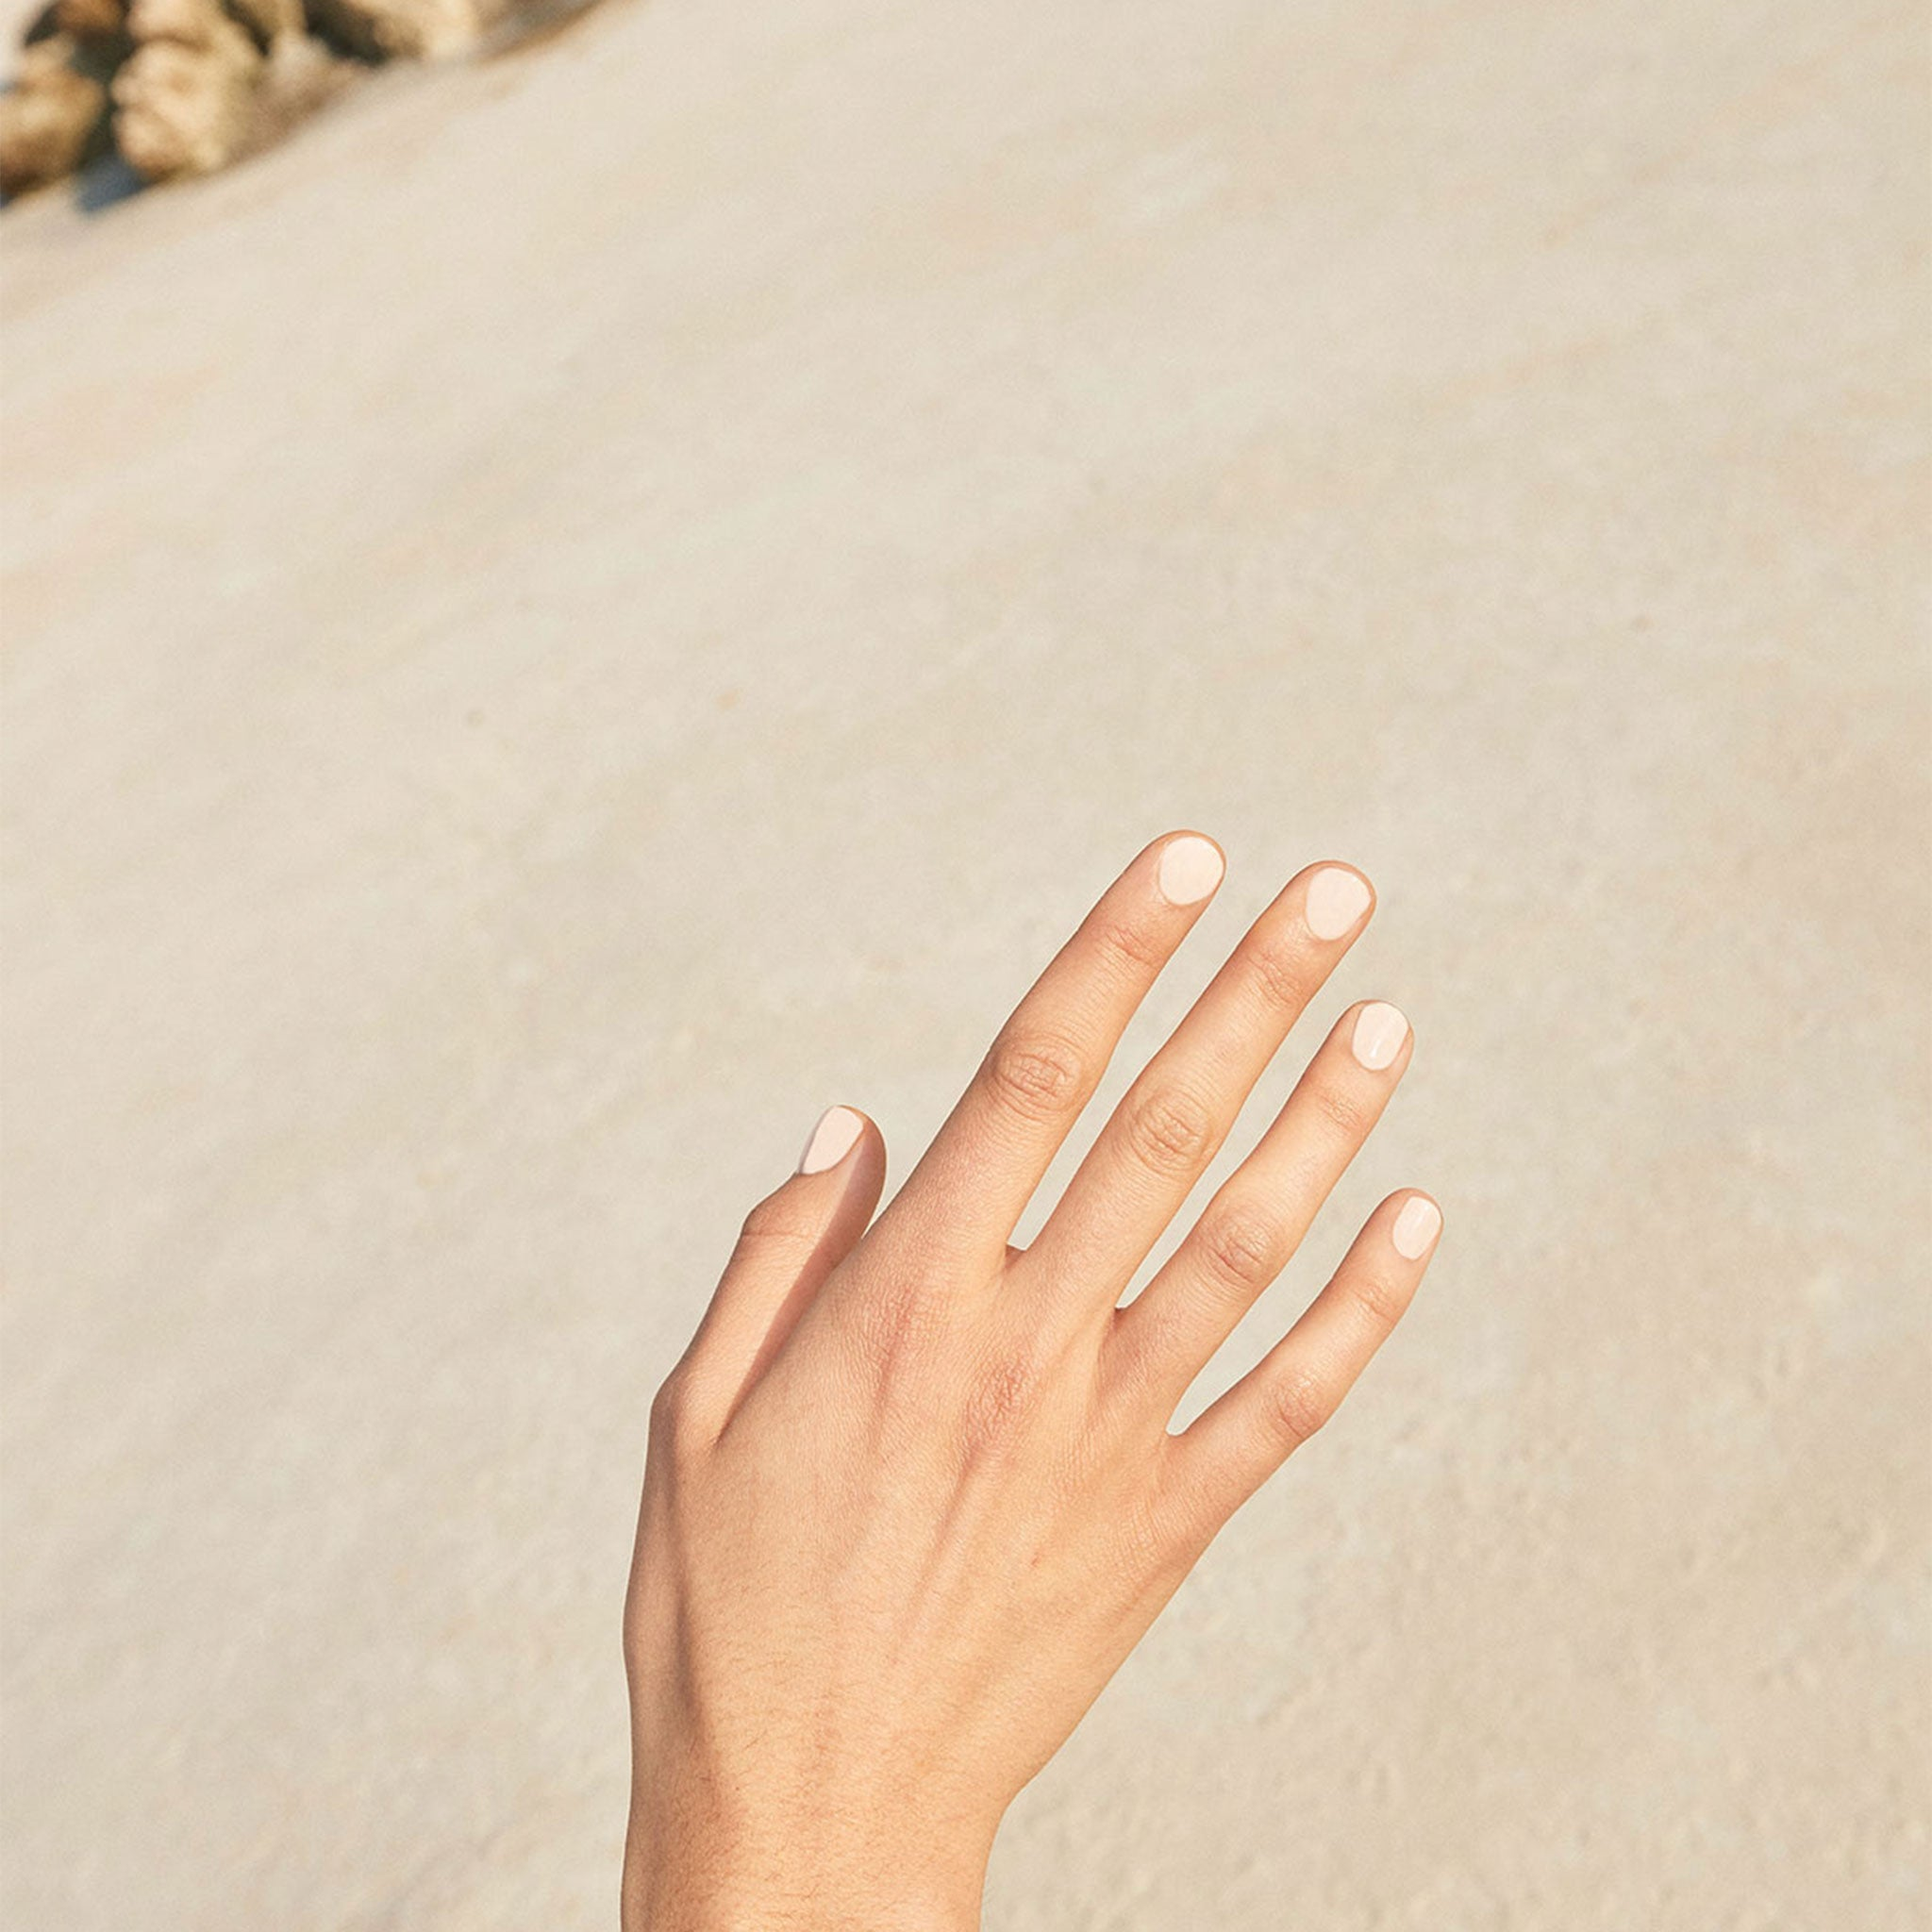 Pair your favourite Wanderlust Life jewellery with a clean, simple manicure created with sustainable, non toxic ingredients. Shop the Licia Florio 'Anacardo' nude nail polish shade at Wanderlust Life jewellery, UK stockist of Licia Florio vegan nail polishes.